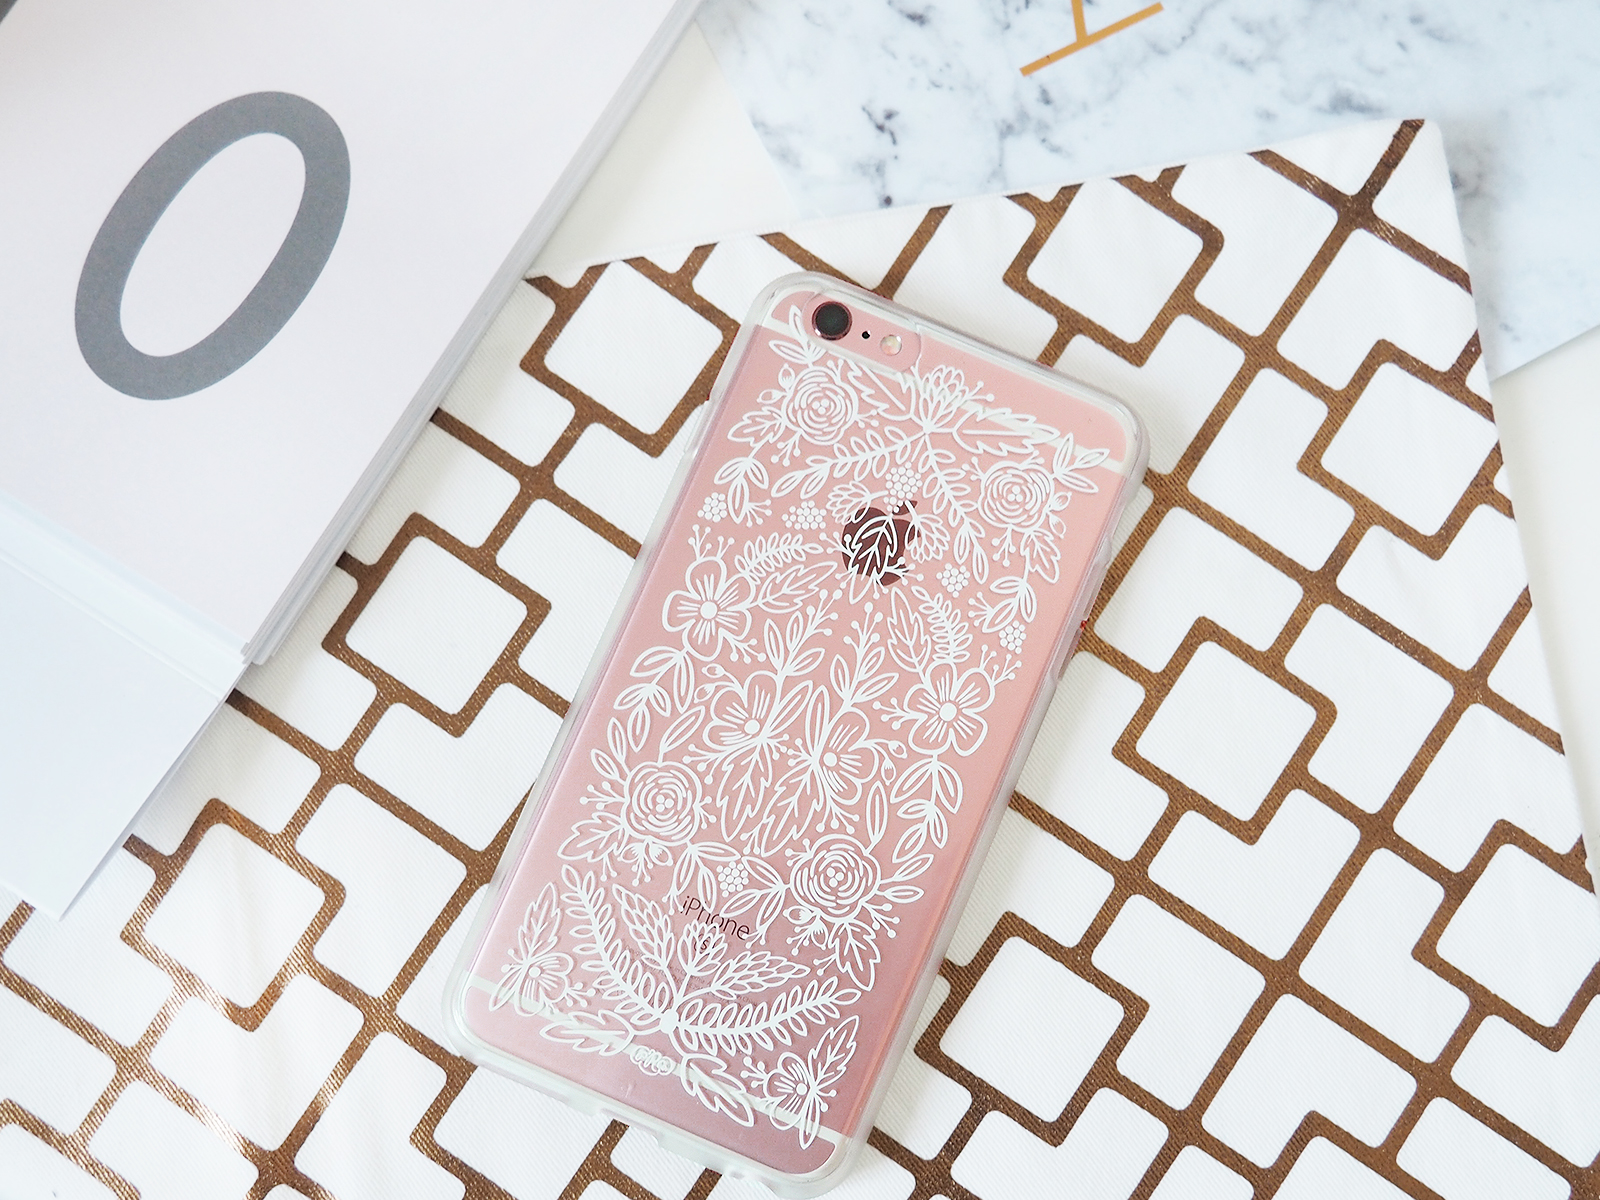 What S On My Iphone 6s Plus In Rose Gold